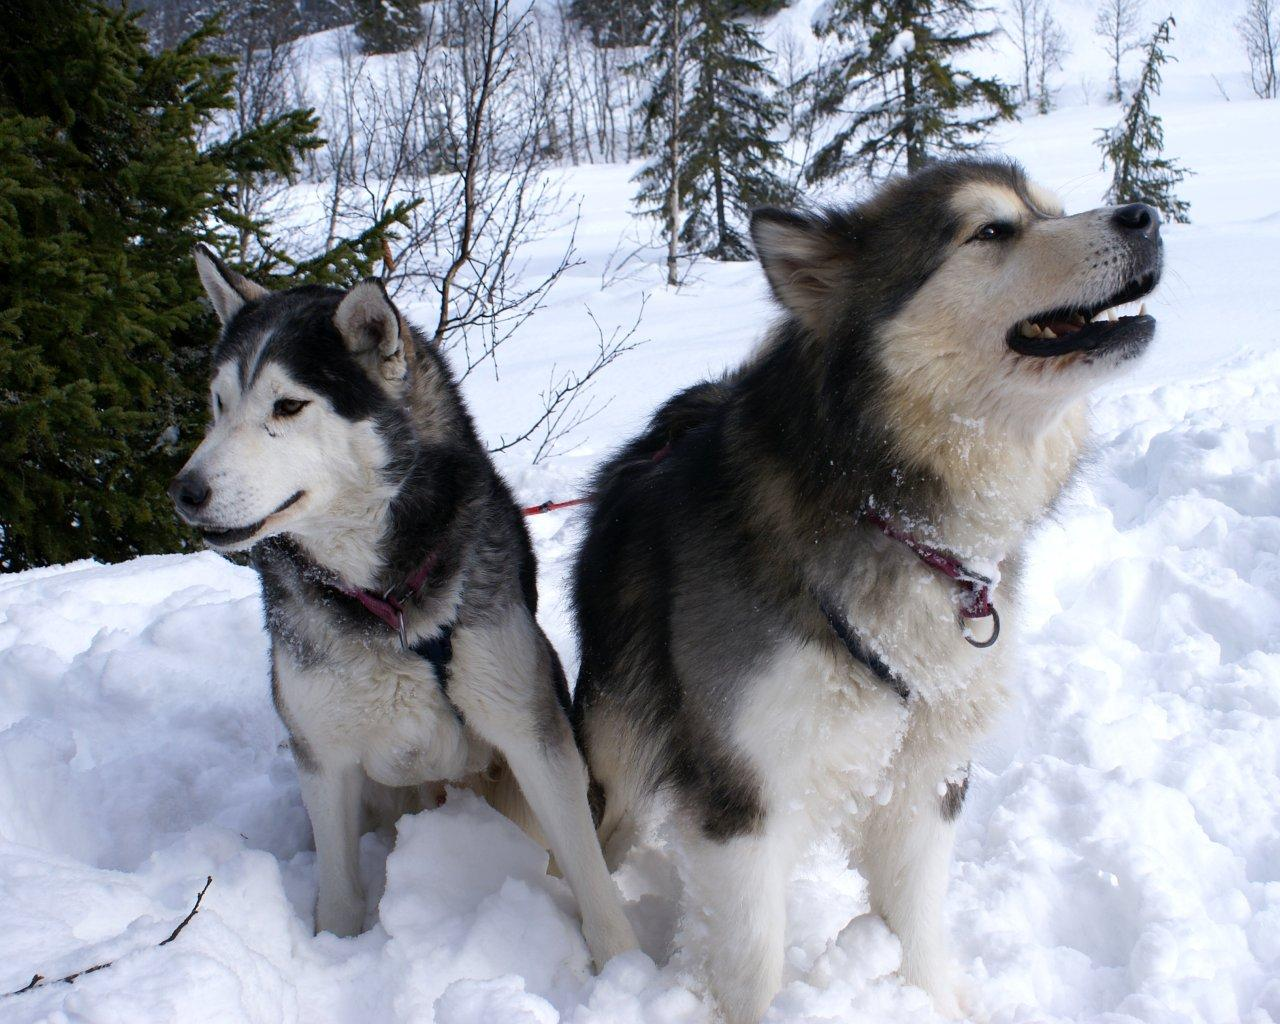 Two adult Alaskan Malamute dogs wallpaper